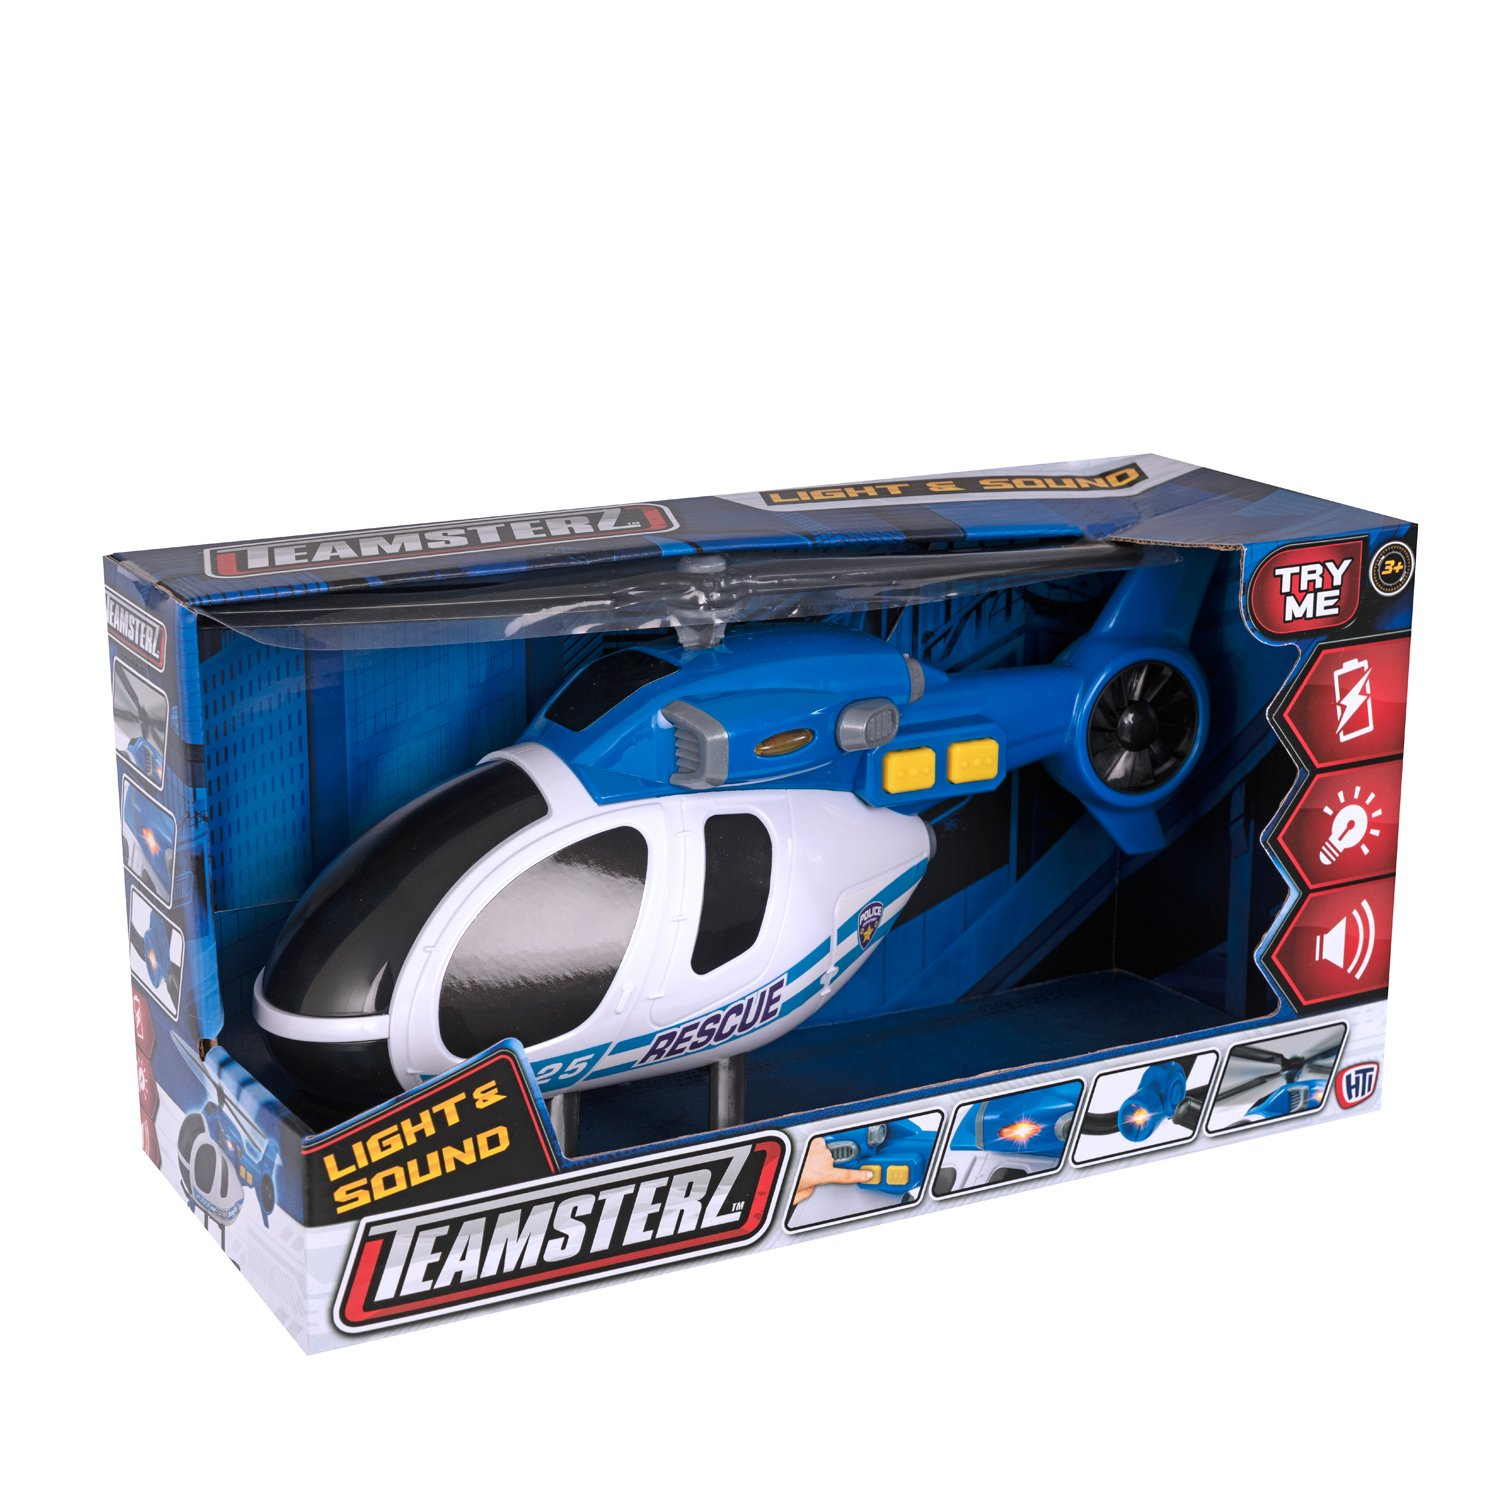 HTI TEAMSTERZ Helicopter with Light and Sound